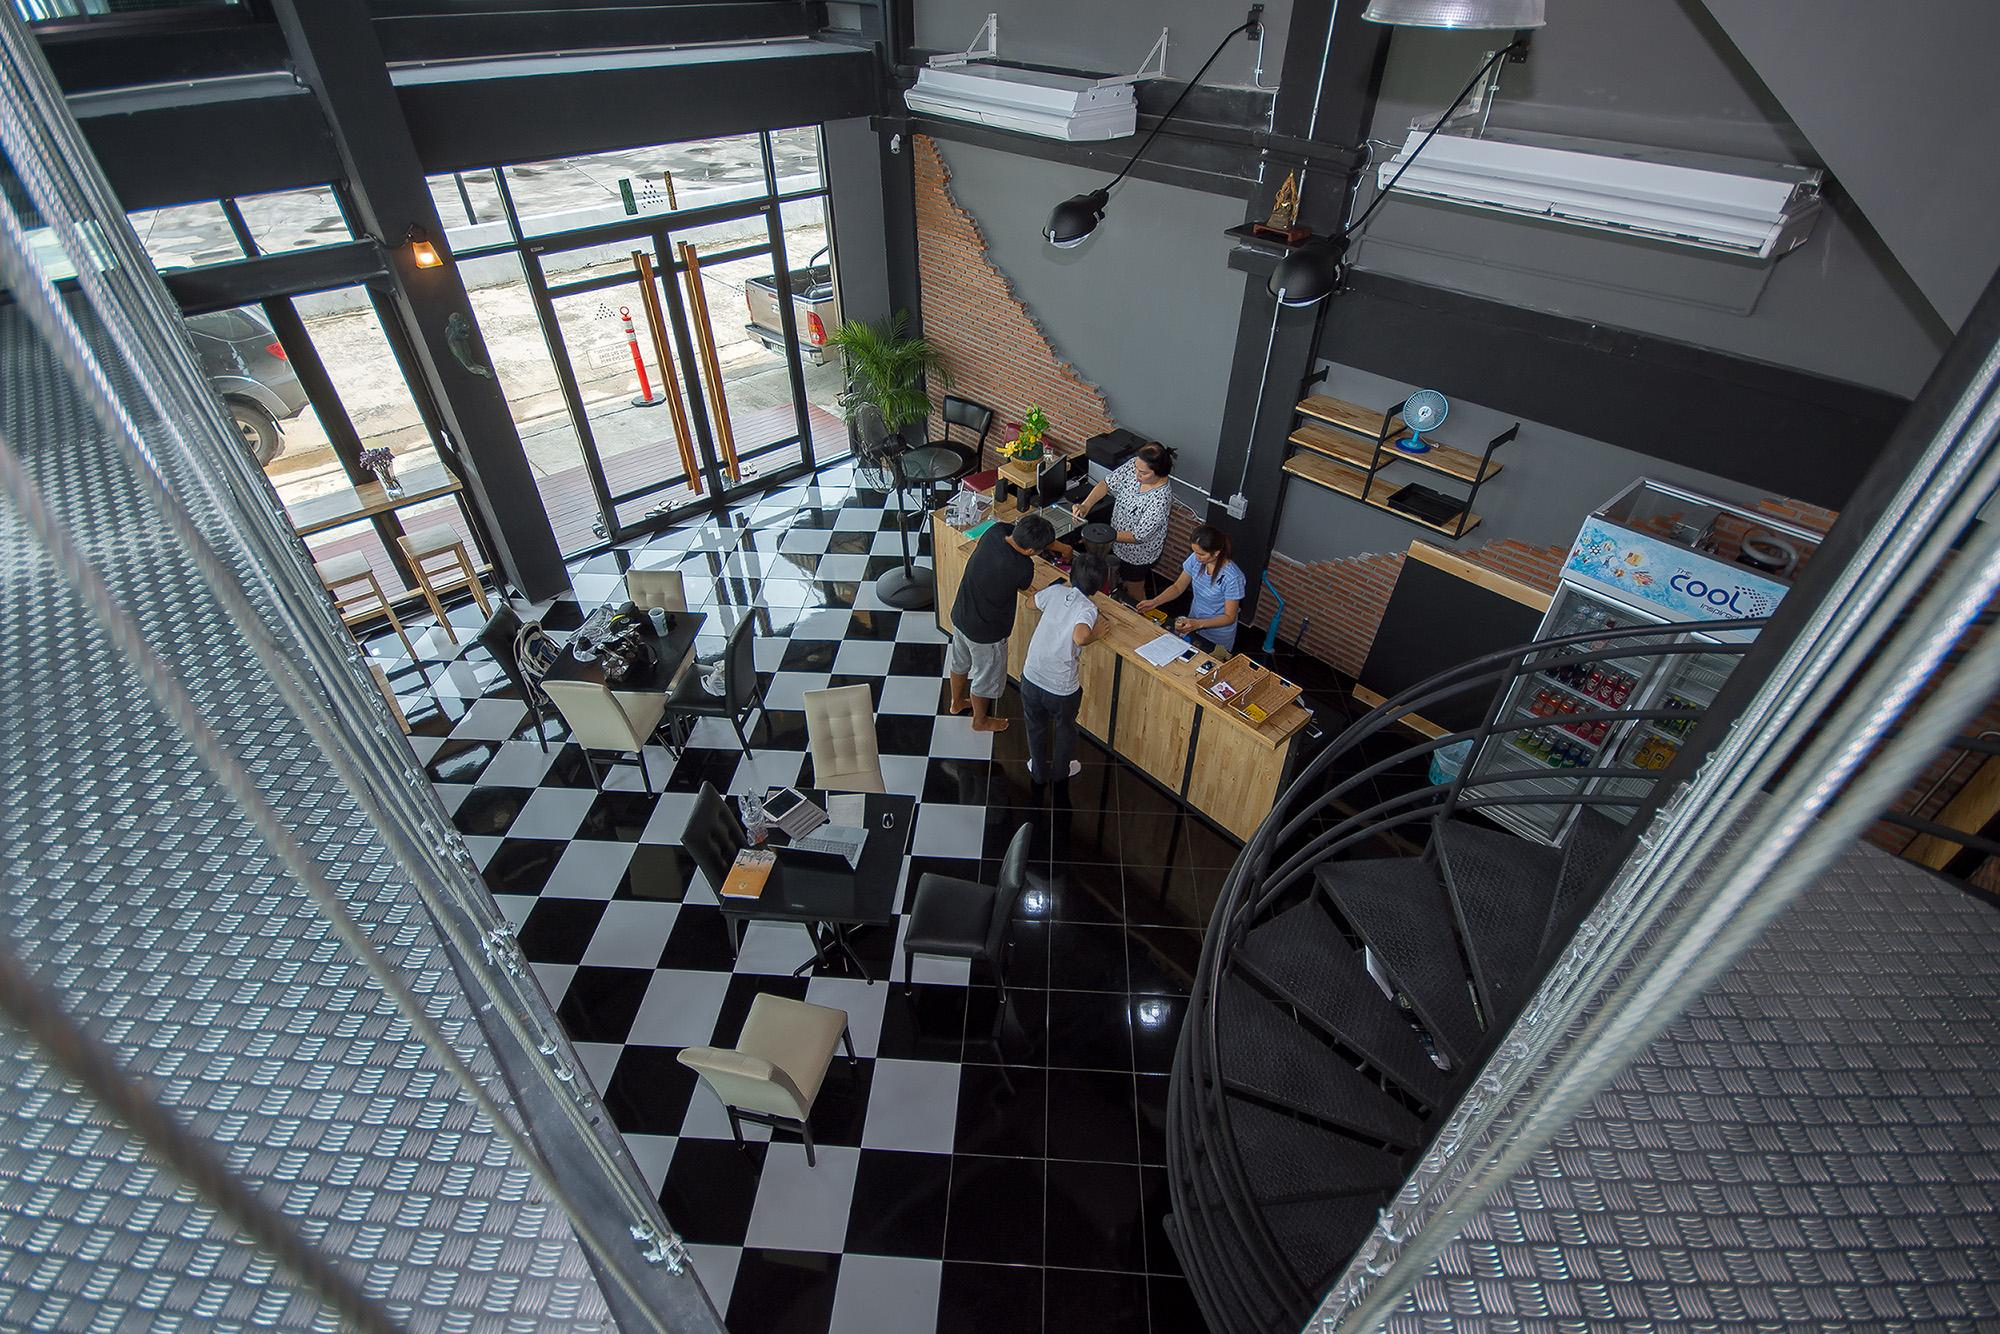 The LogBook room and cafe', Muang Chon Buri